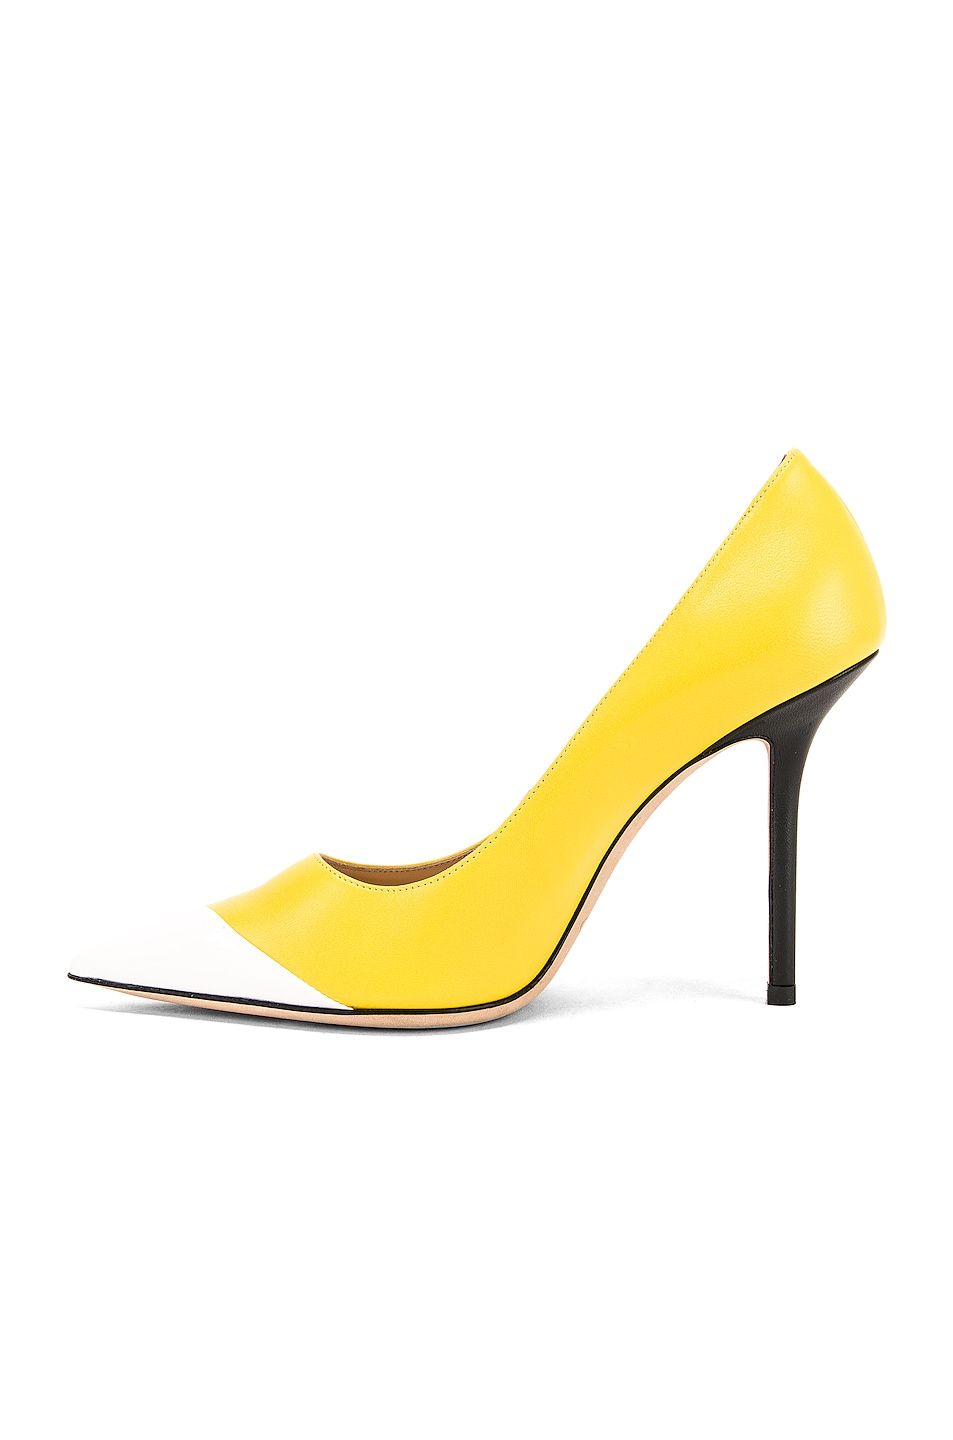 Image 5 of Jimmy Choo Love 100 Heel in Black, White & Fluo Yellow